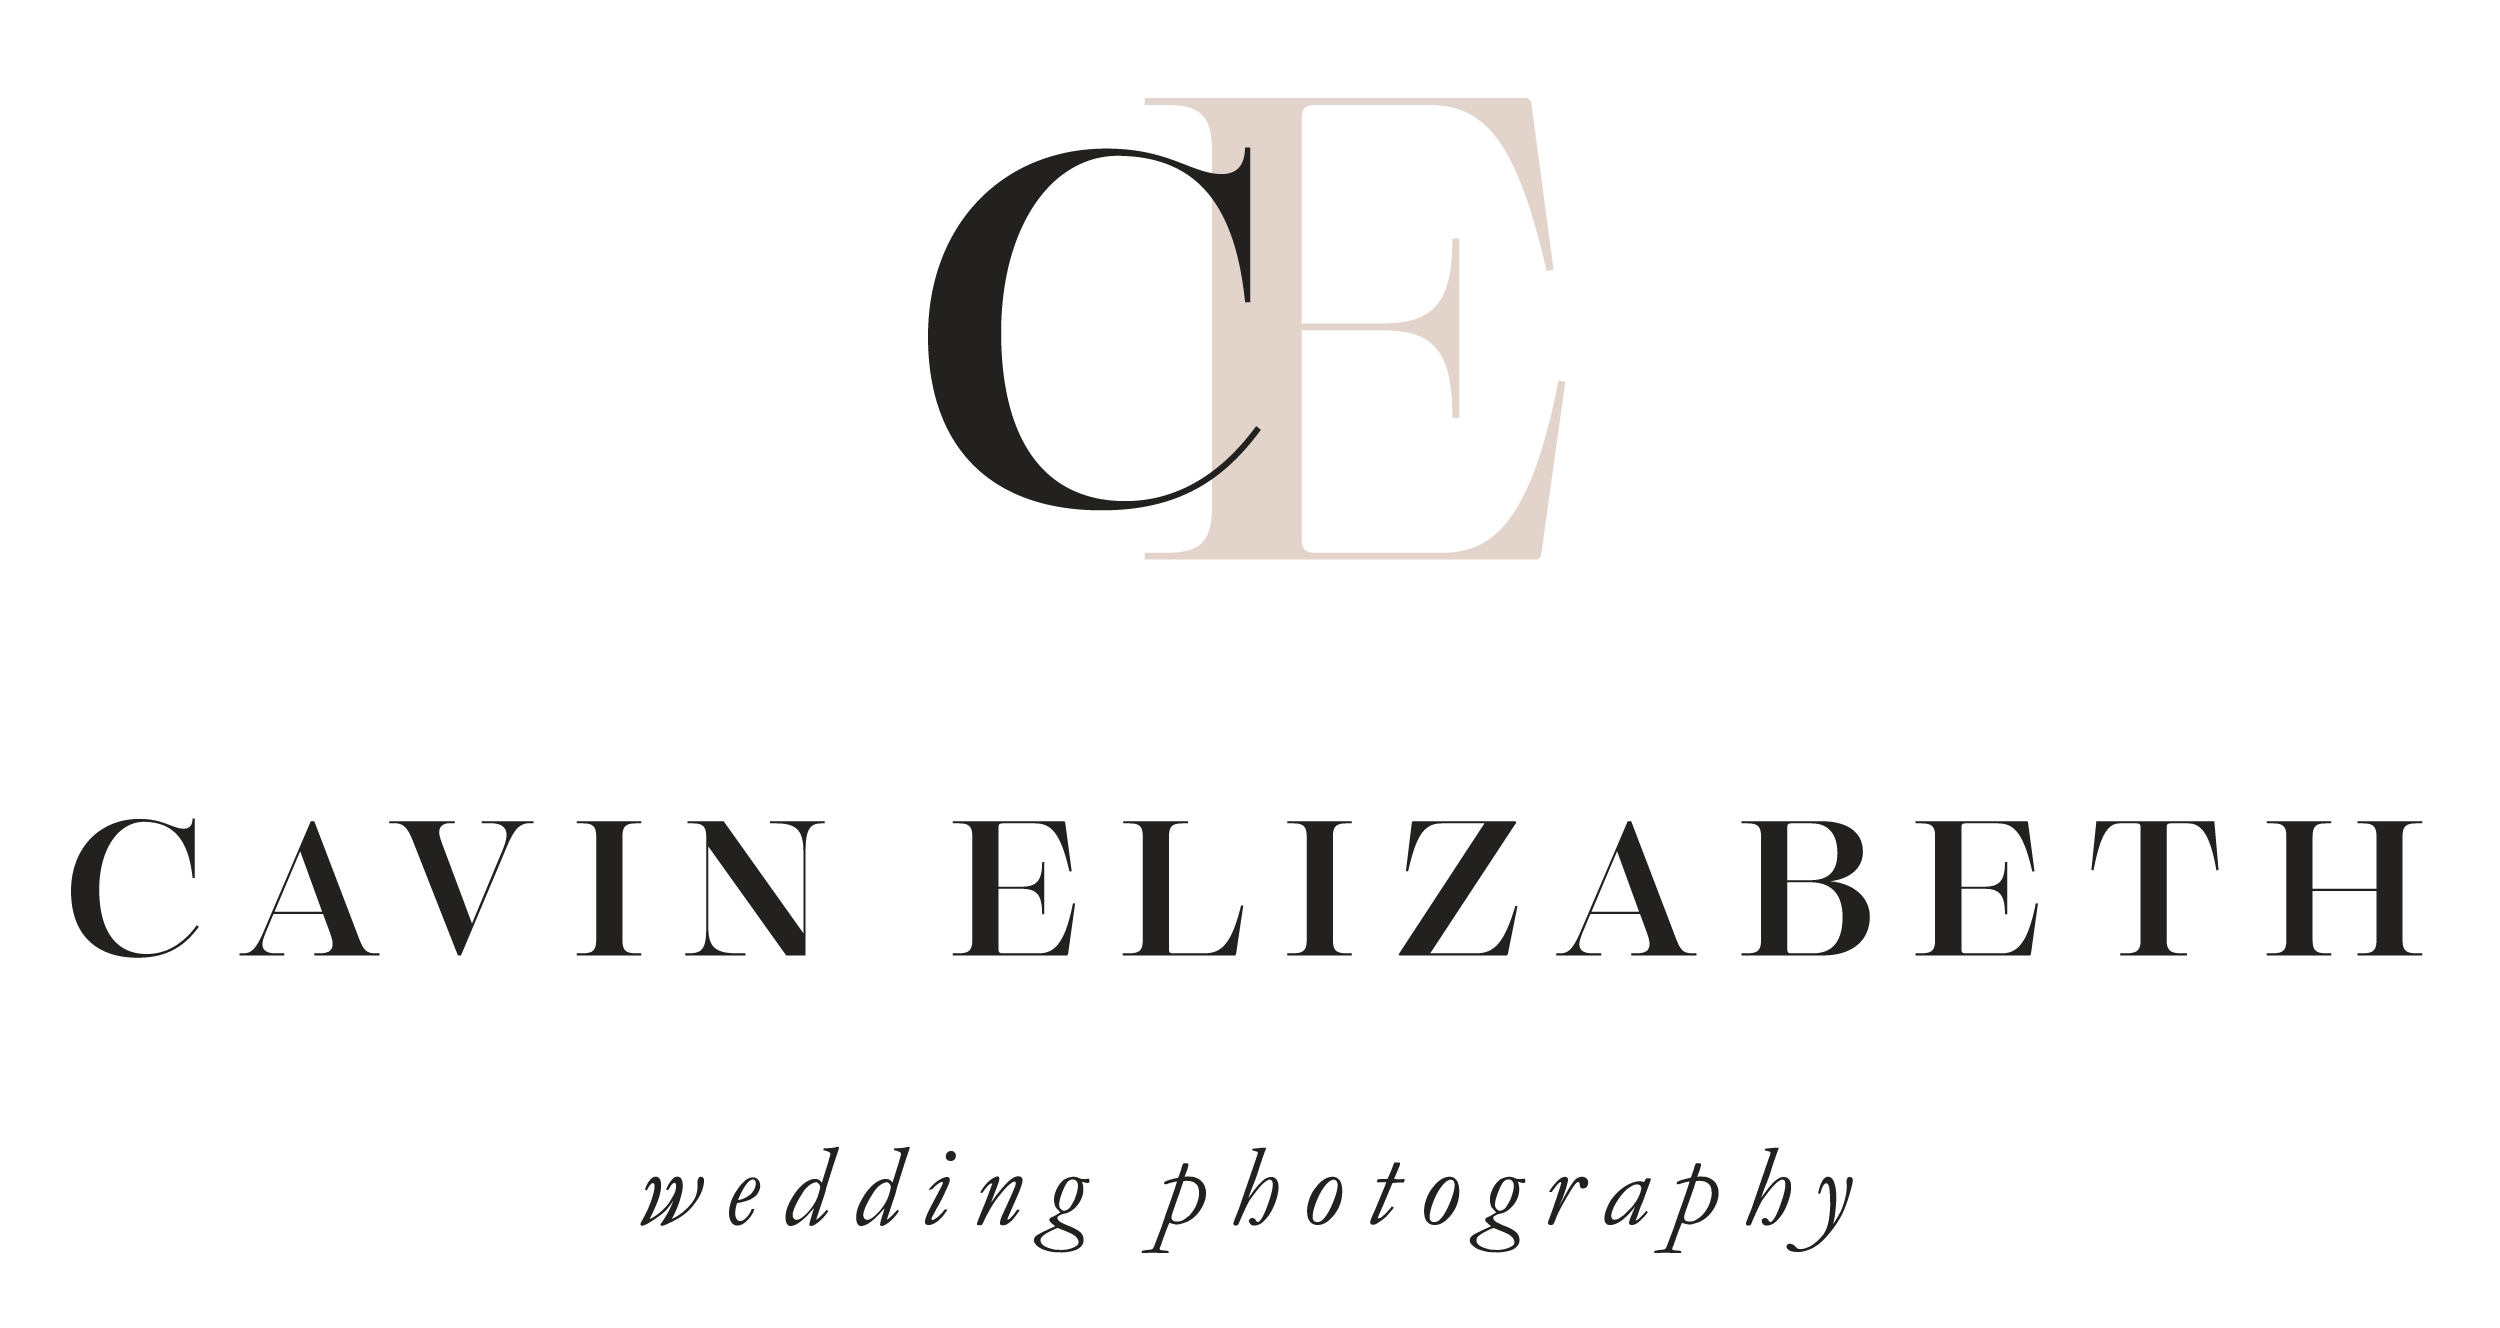 Cavin Elizabeth Photography